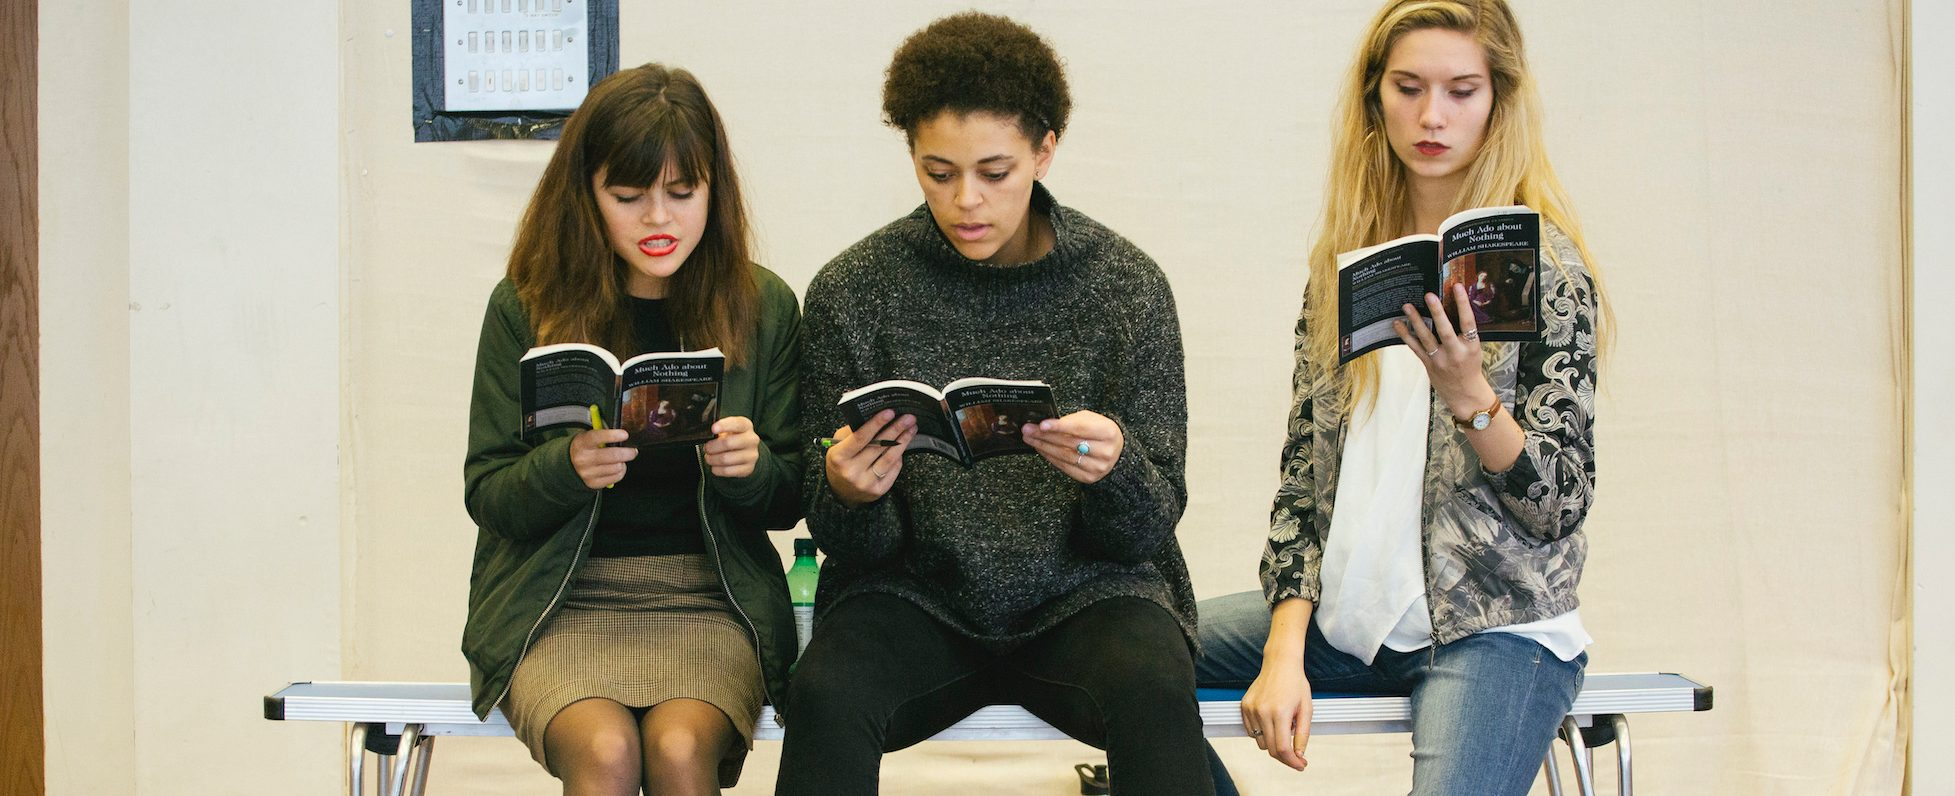 Three students sit on a bench reading a book